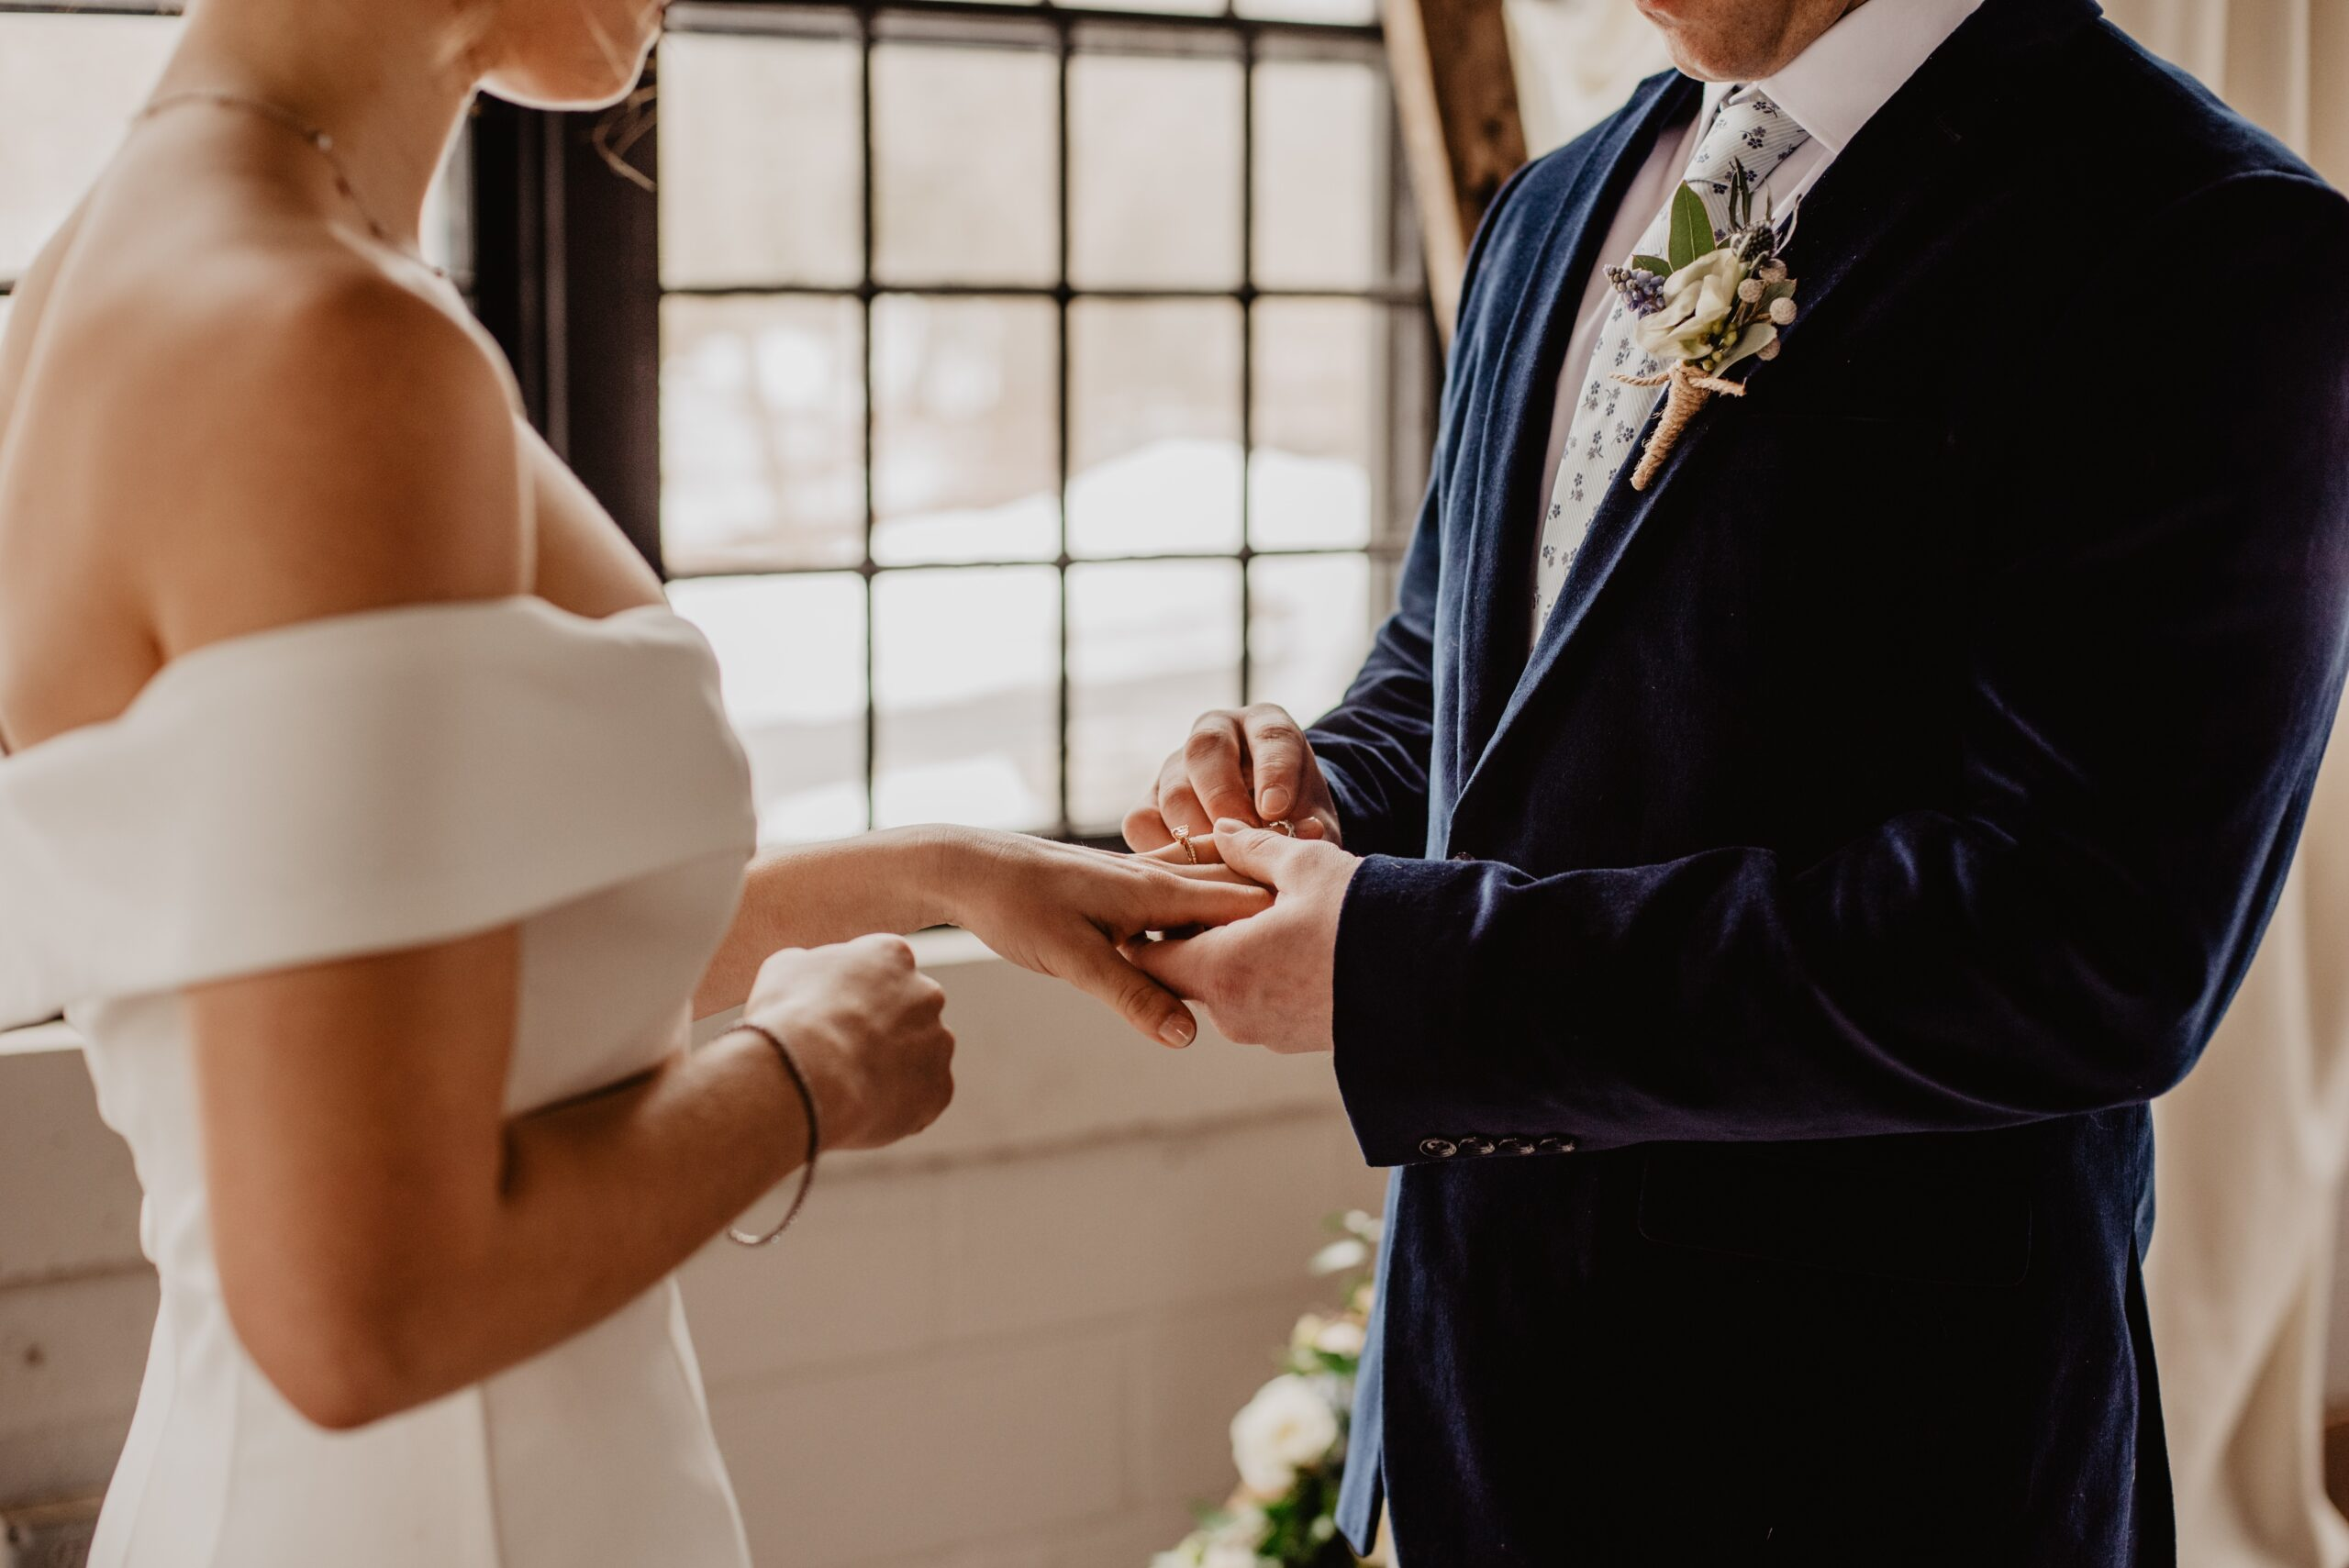 """Say """"Yes"""" to Your Wedding Plans This Season"""